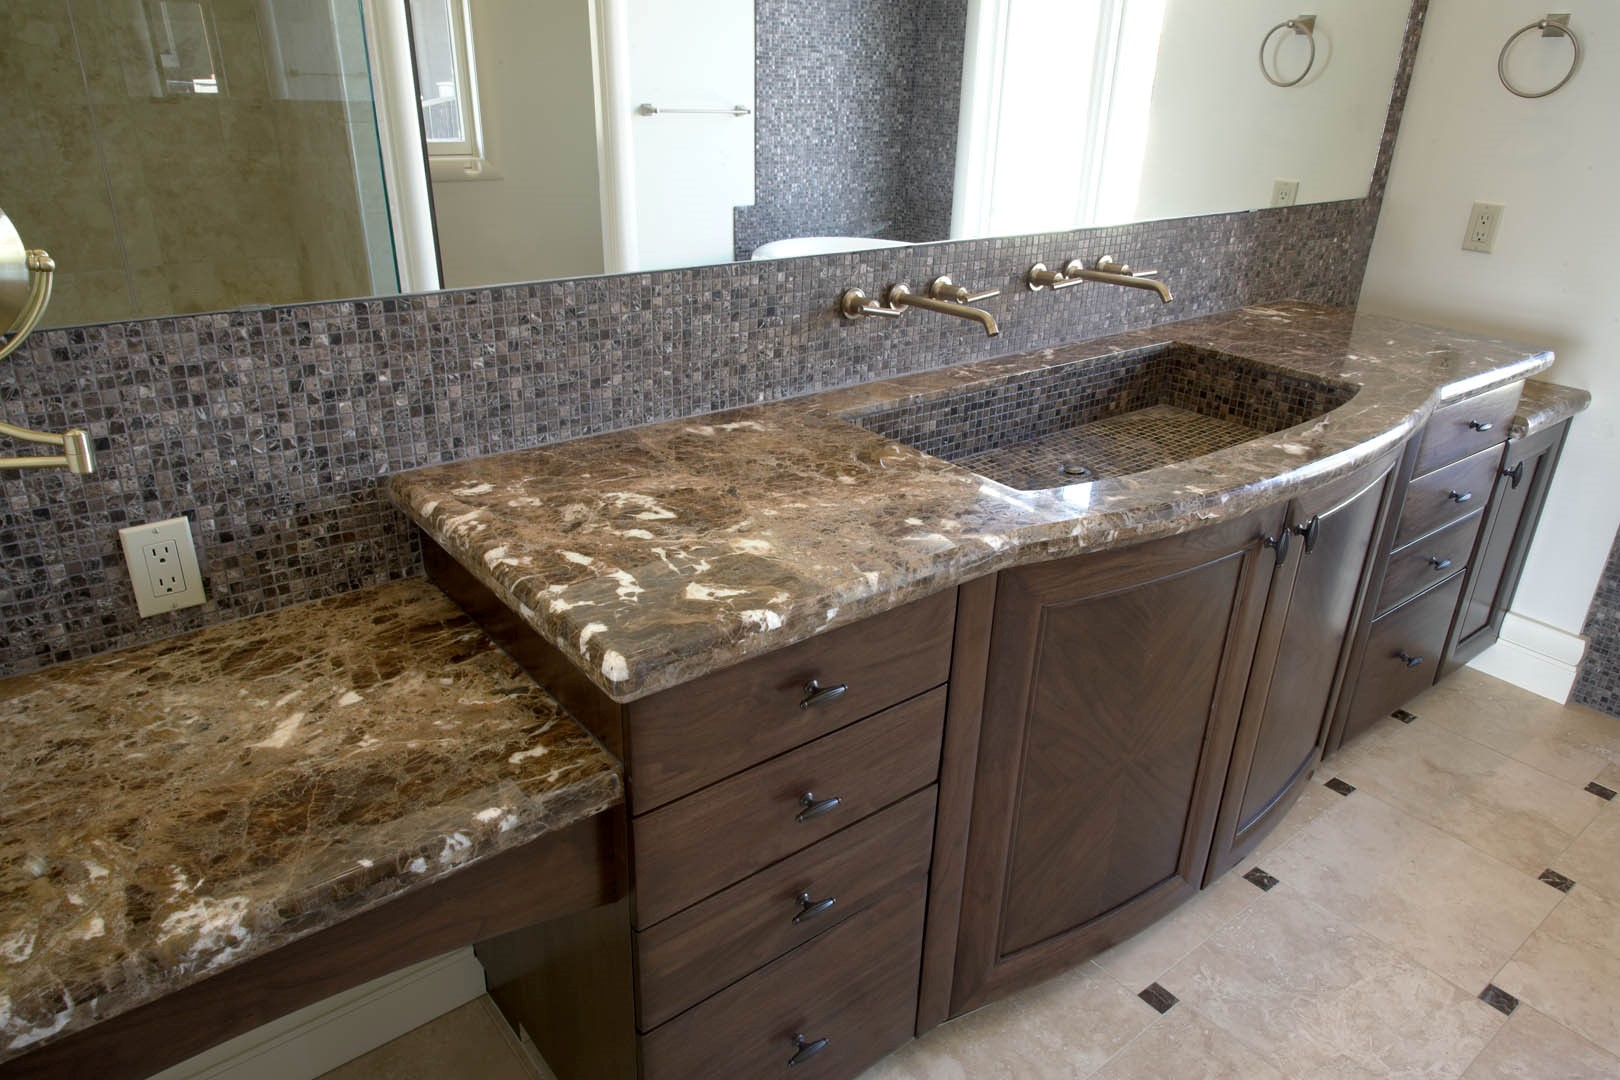 Calgary Bathroom Counters by Silkstone and Granite